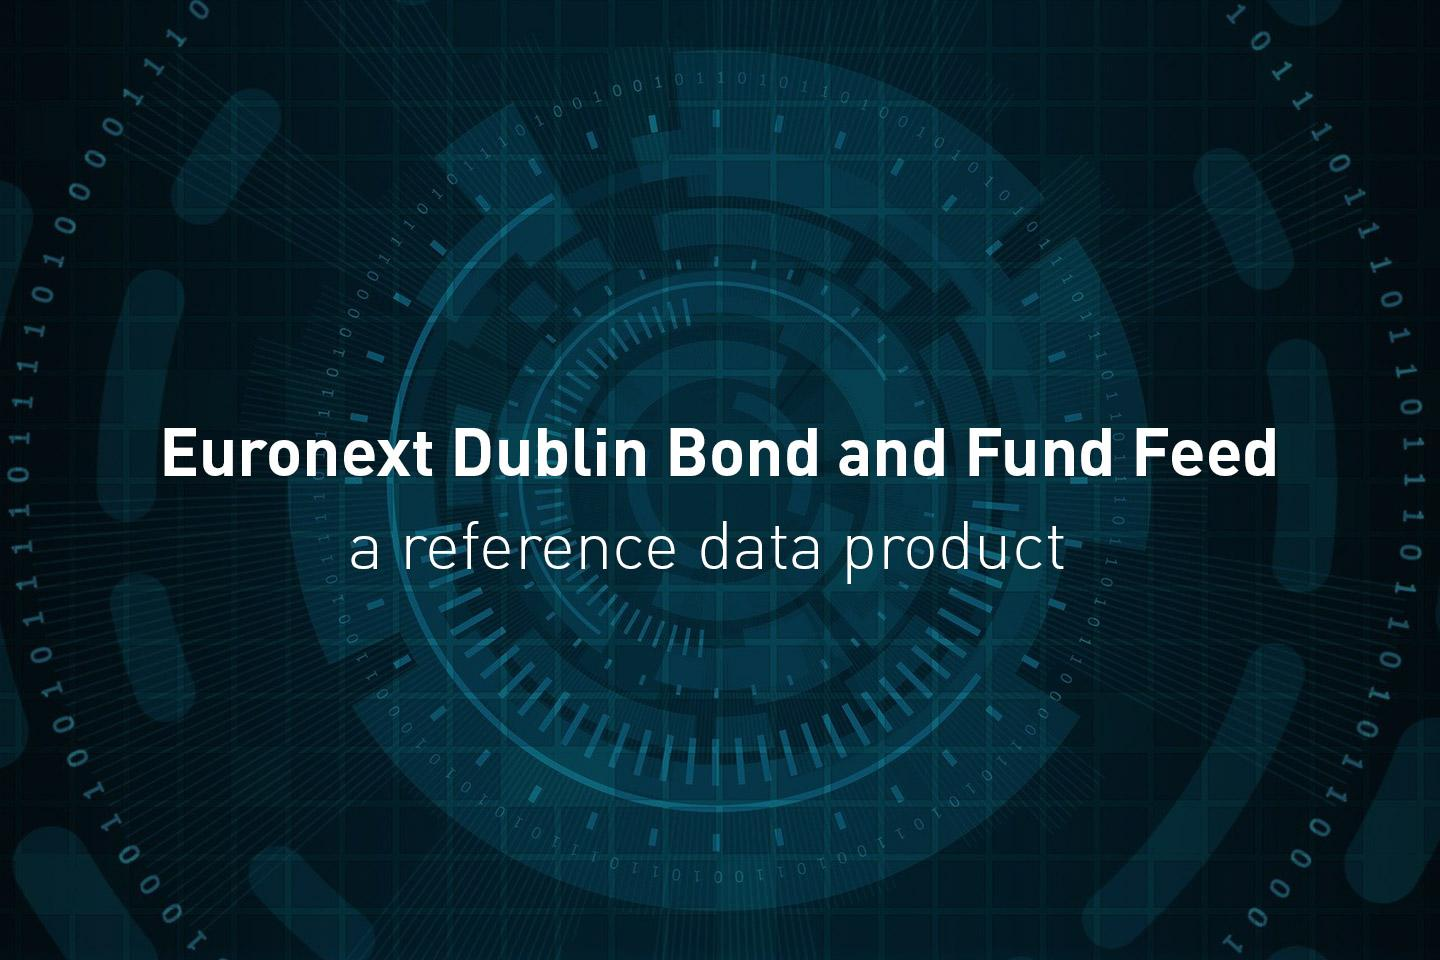 Dublin Bond & Fund Feed